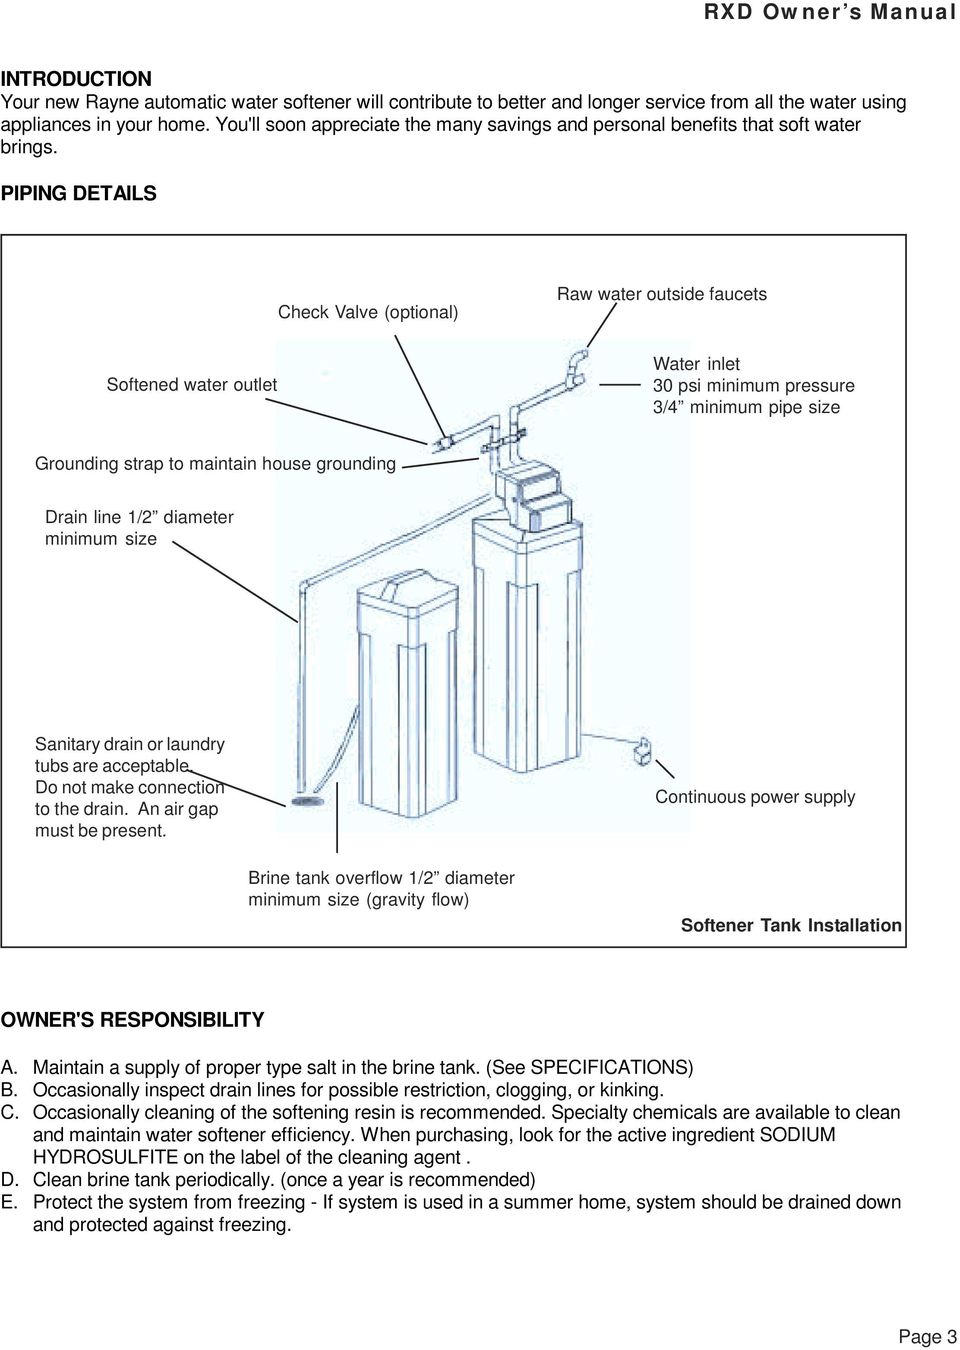 medium resolution of piping details check valve optional raw water outside faucets softened water outlet water inlet